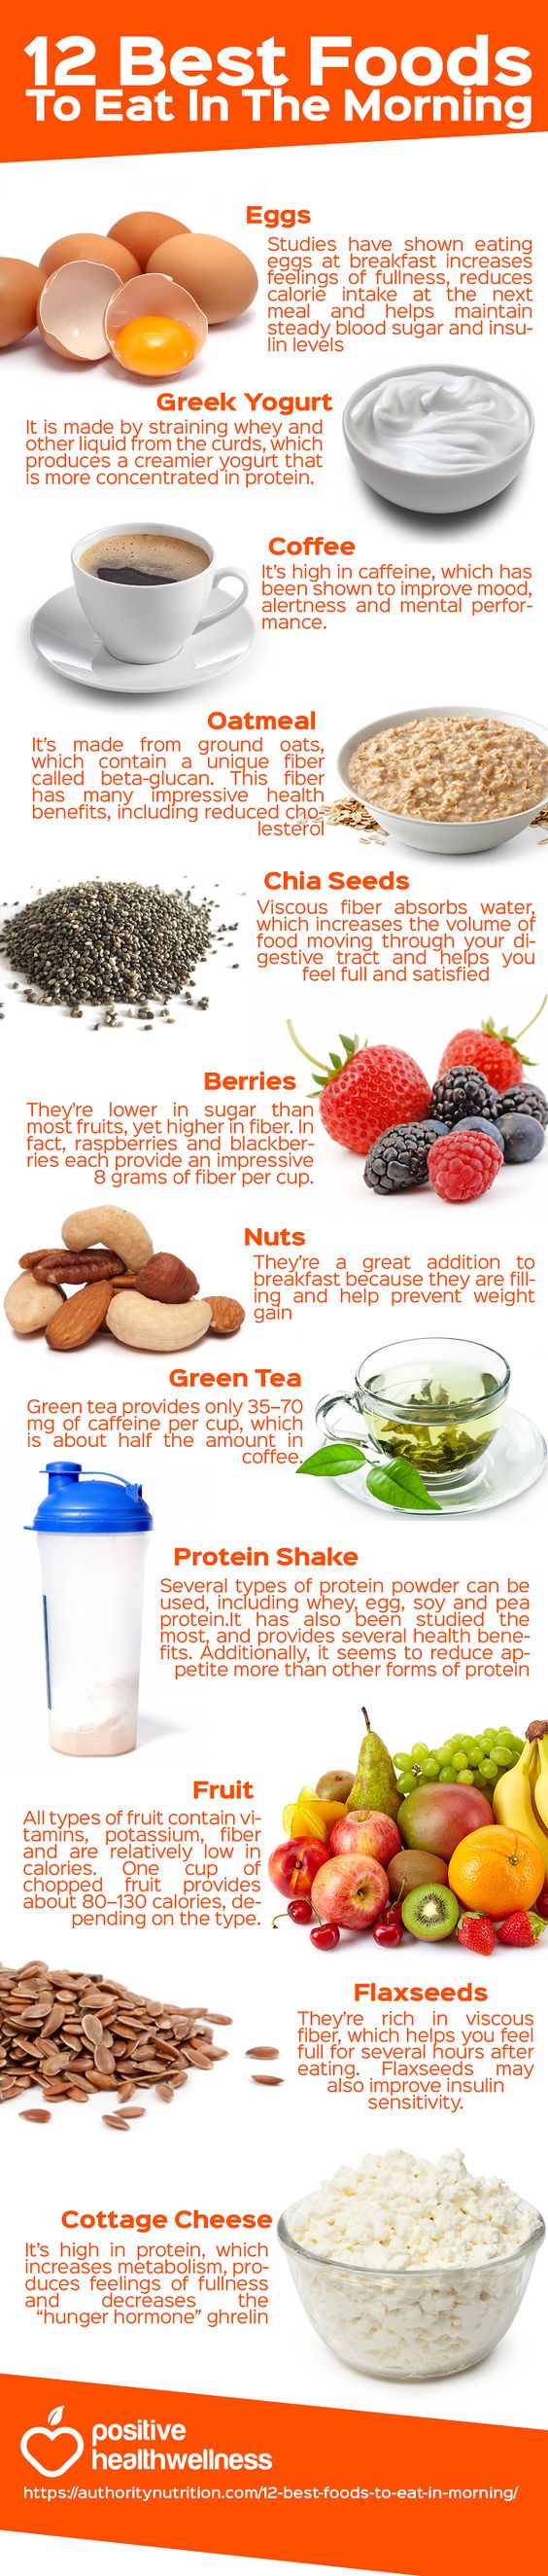 12 Best Foods To Eat In The Morning – Positive Health Wellness Infographic